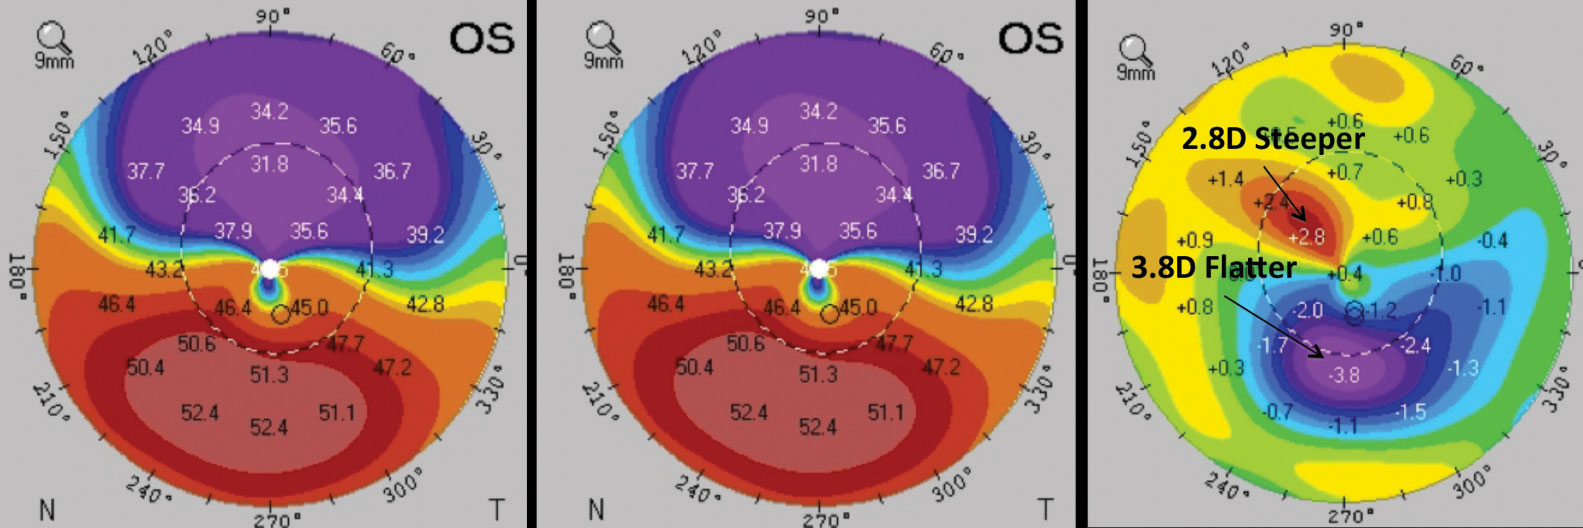 This patient underwent epi-on CXL. Comparing the pre-op (left) and post-op (middle) corneal thickness reveals significant changes in corneal parameters in the difference map (right). Images: William Trattler, MD; International Keratoconus Academy